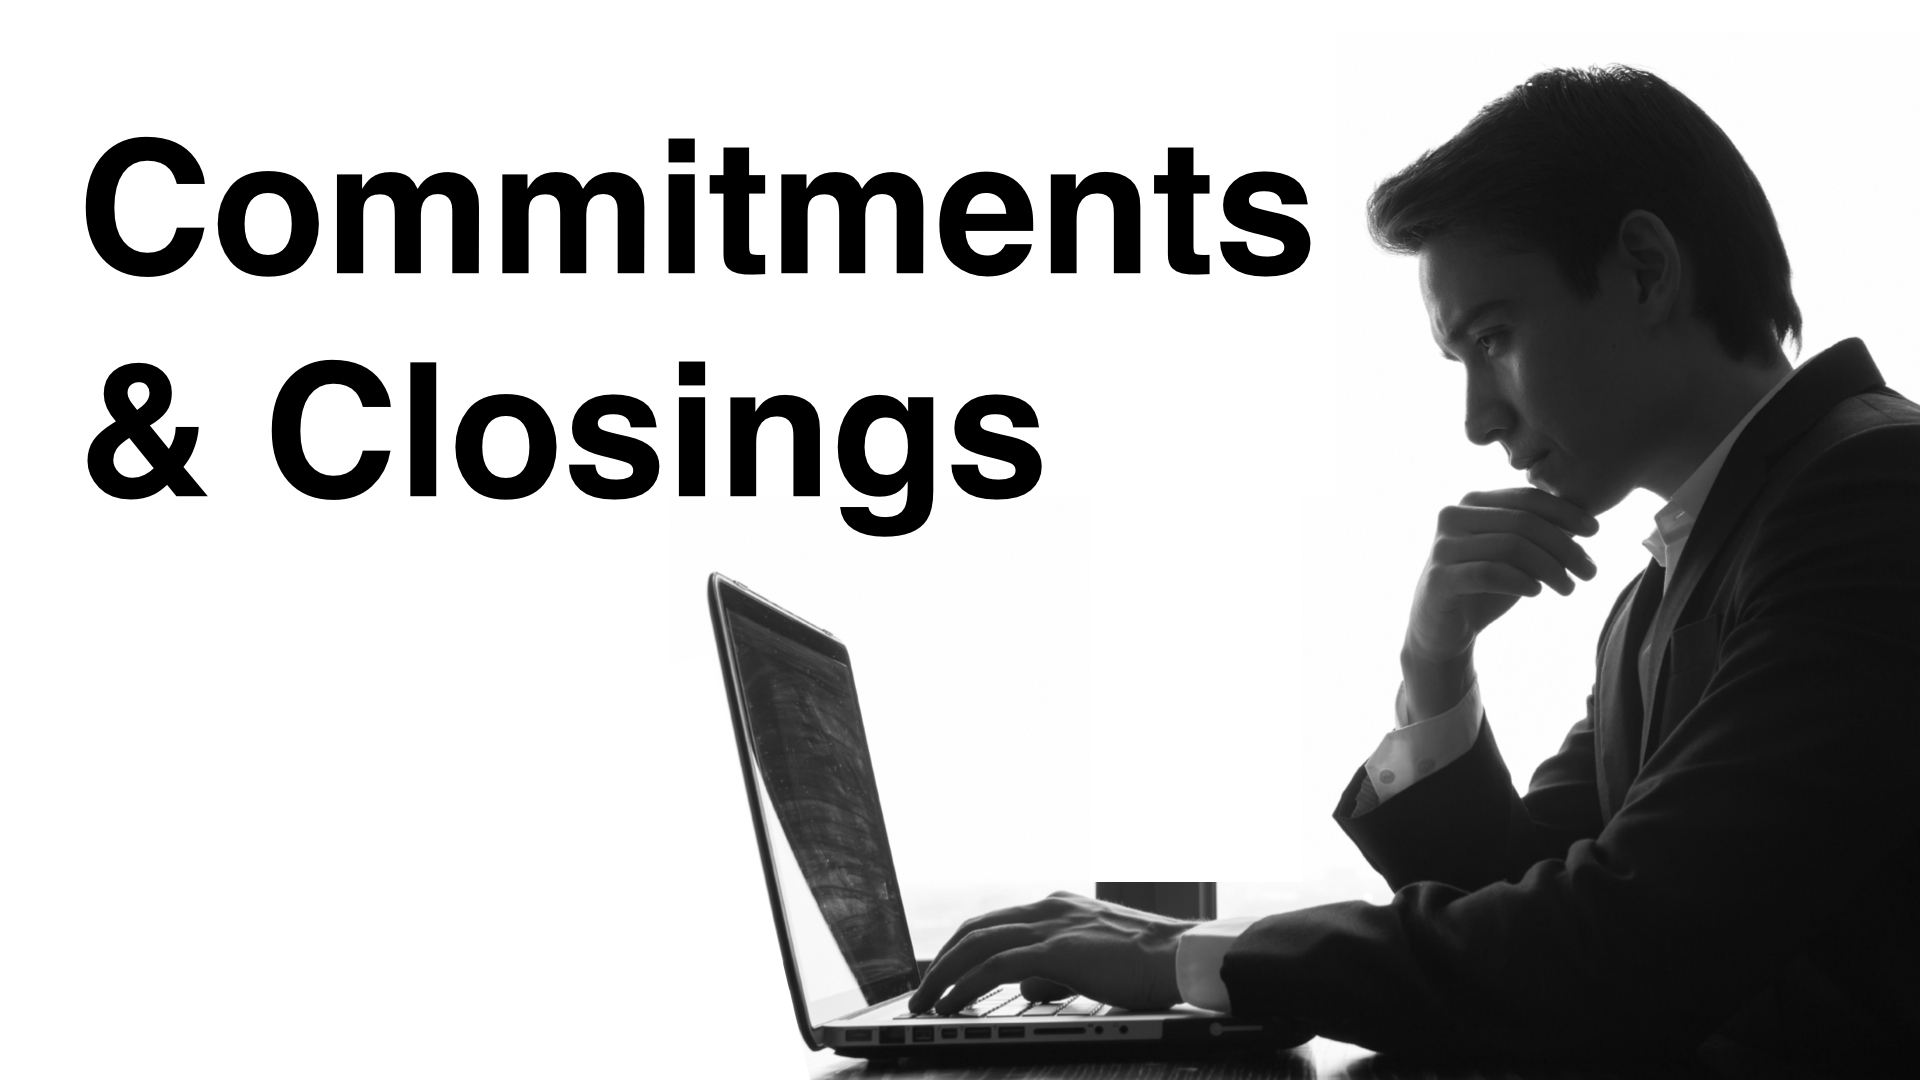 An Insightful Description Of Commitments And Closings For The